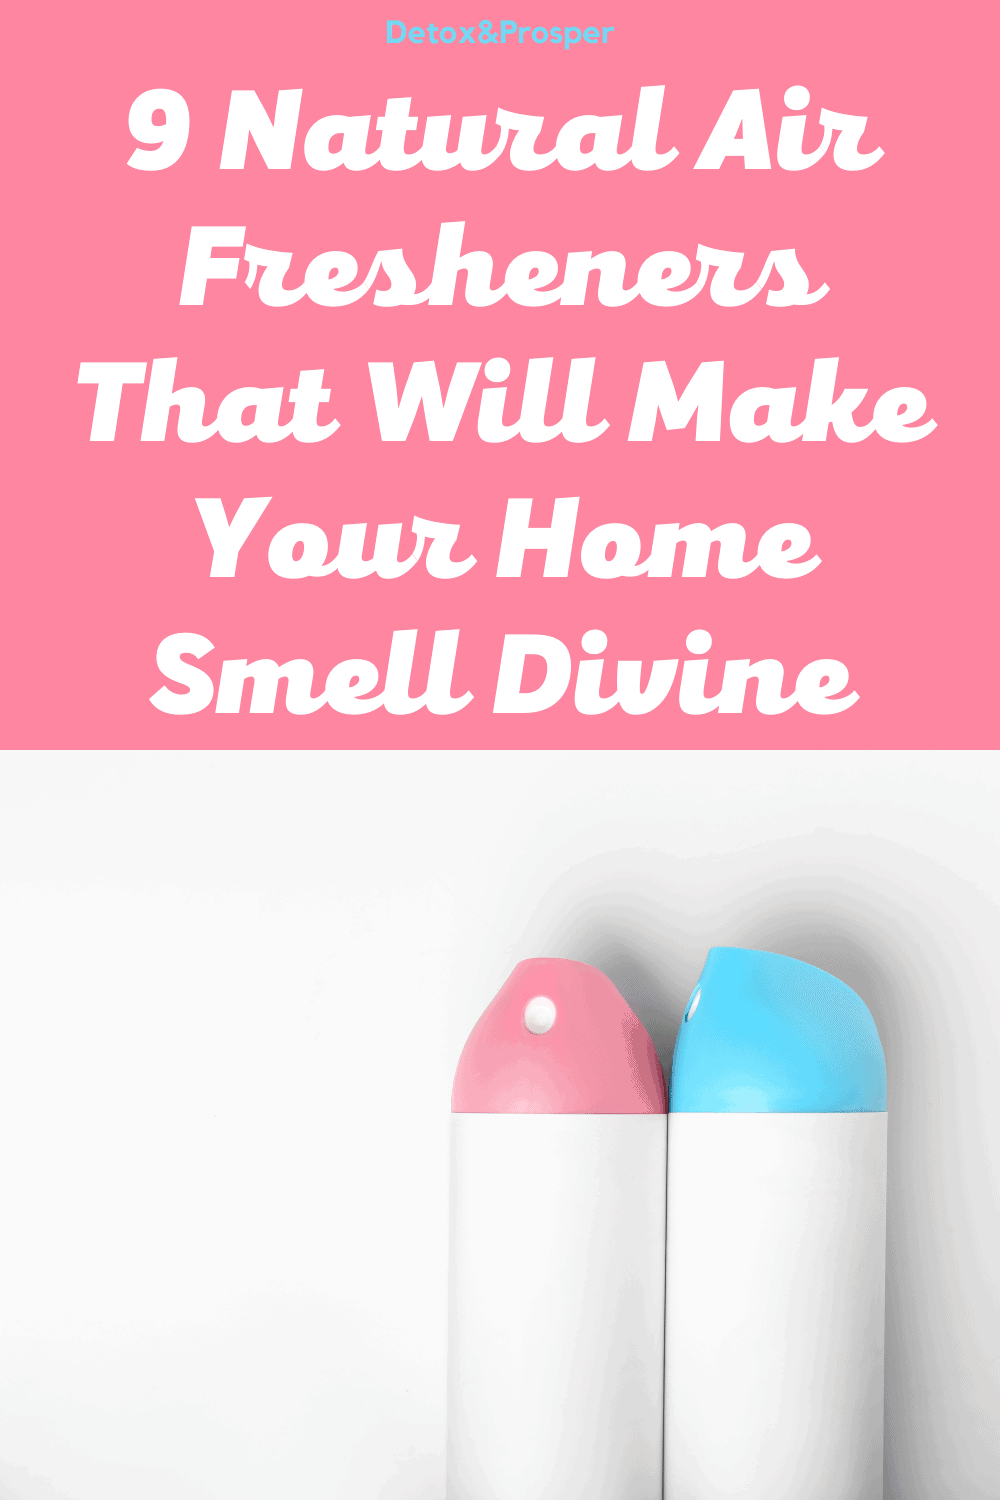 9 Natural Air Fresheners that will make your home smell divine